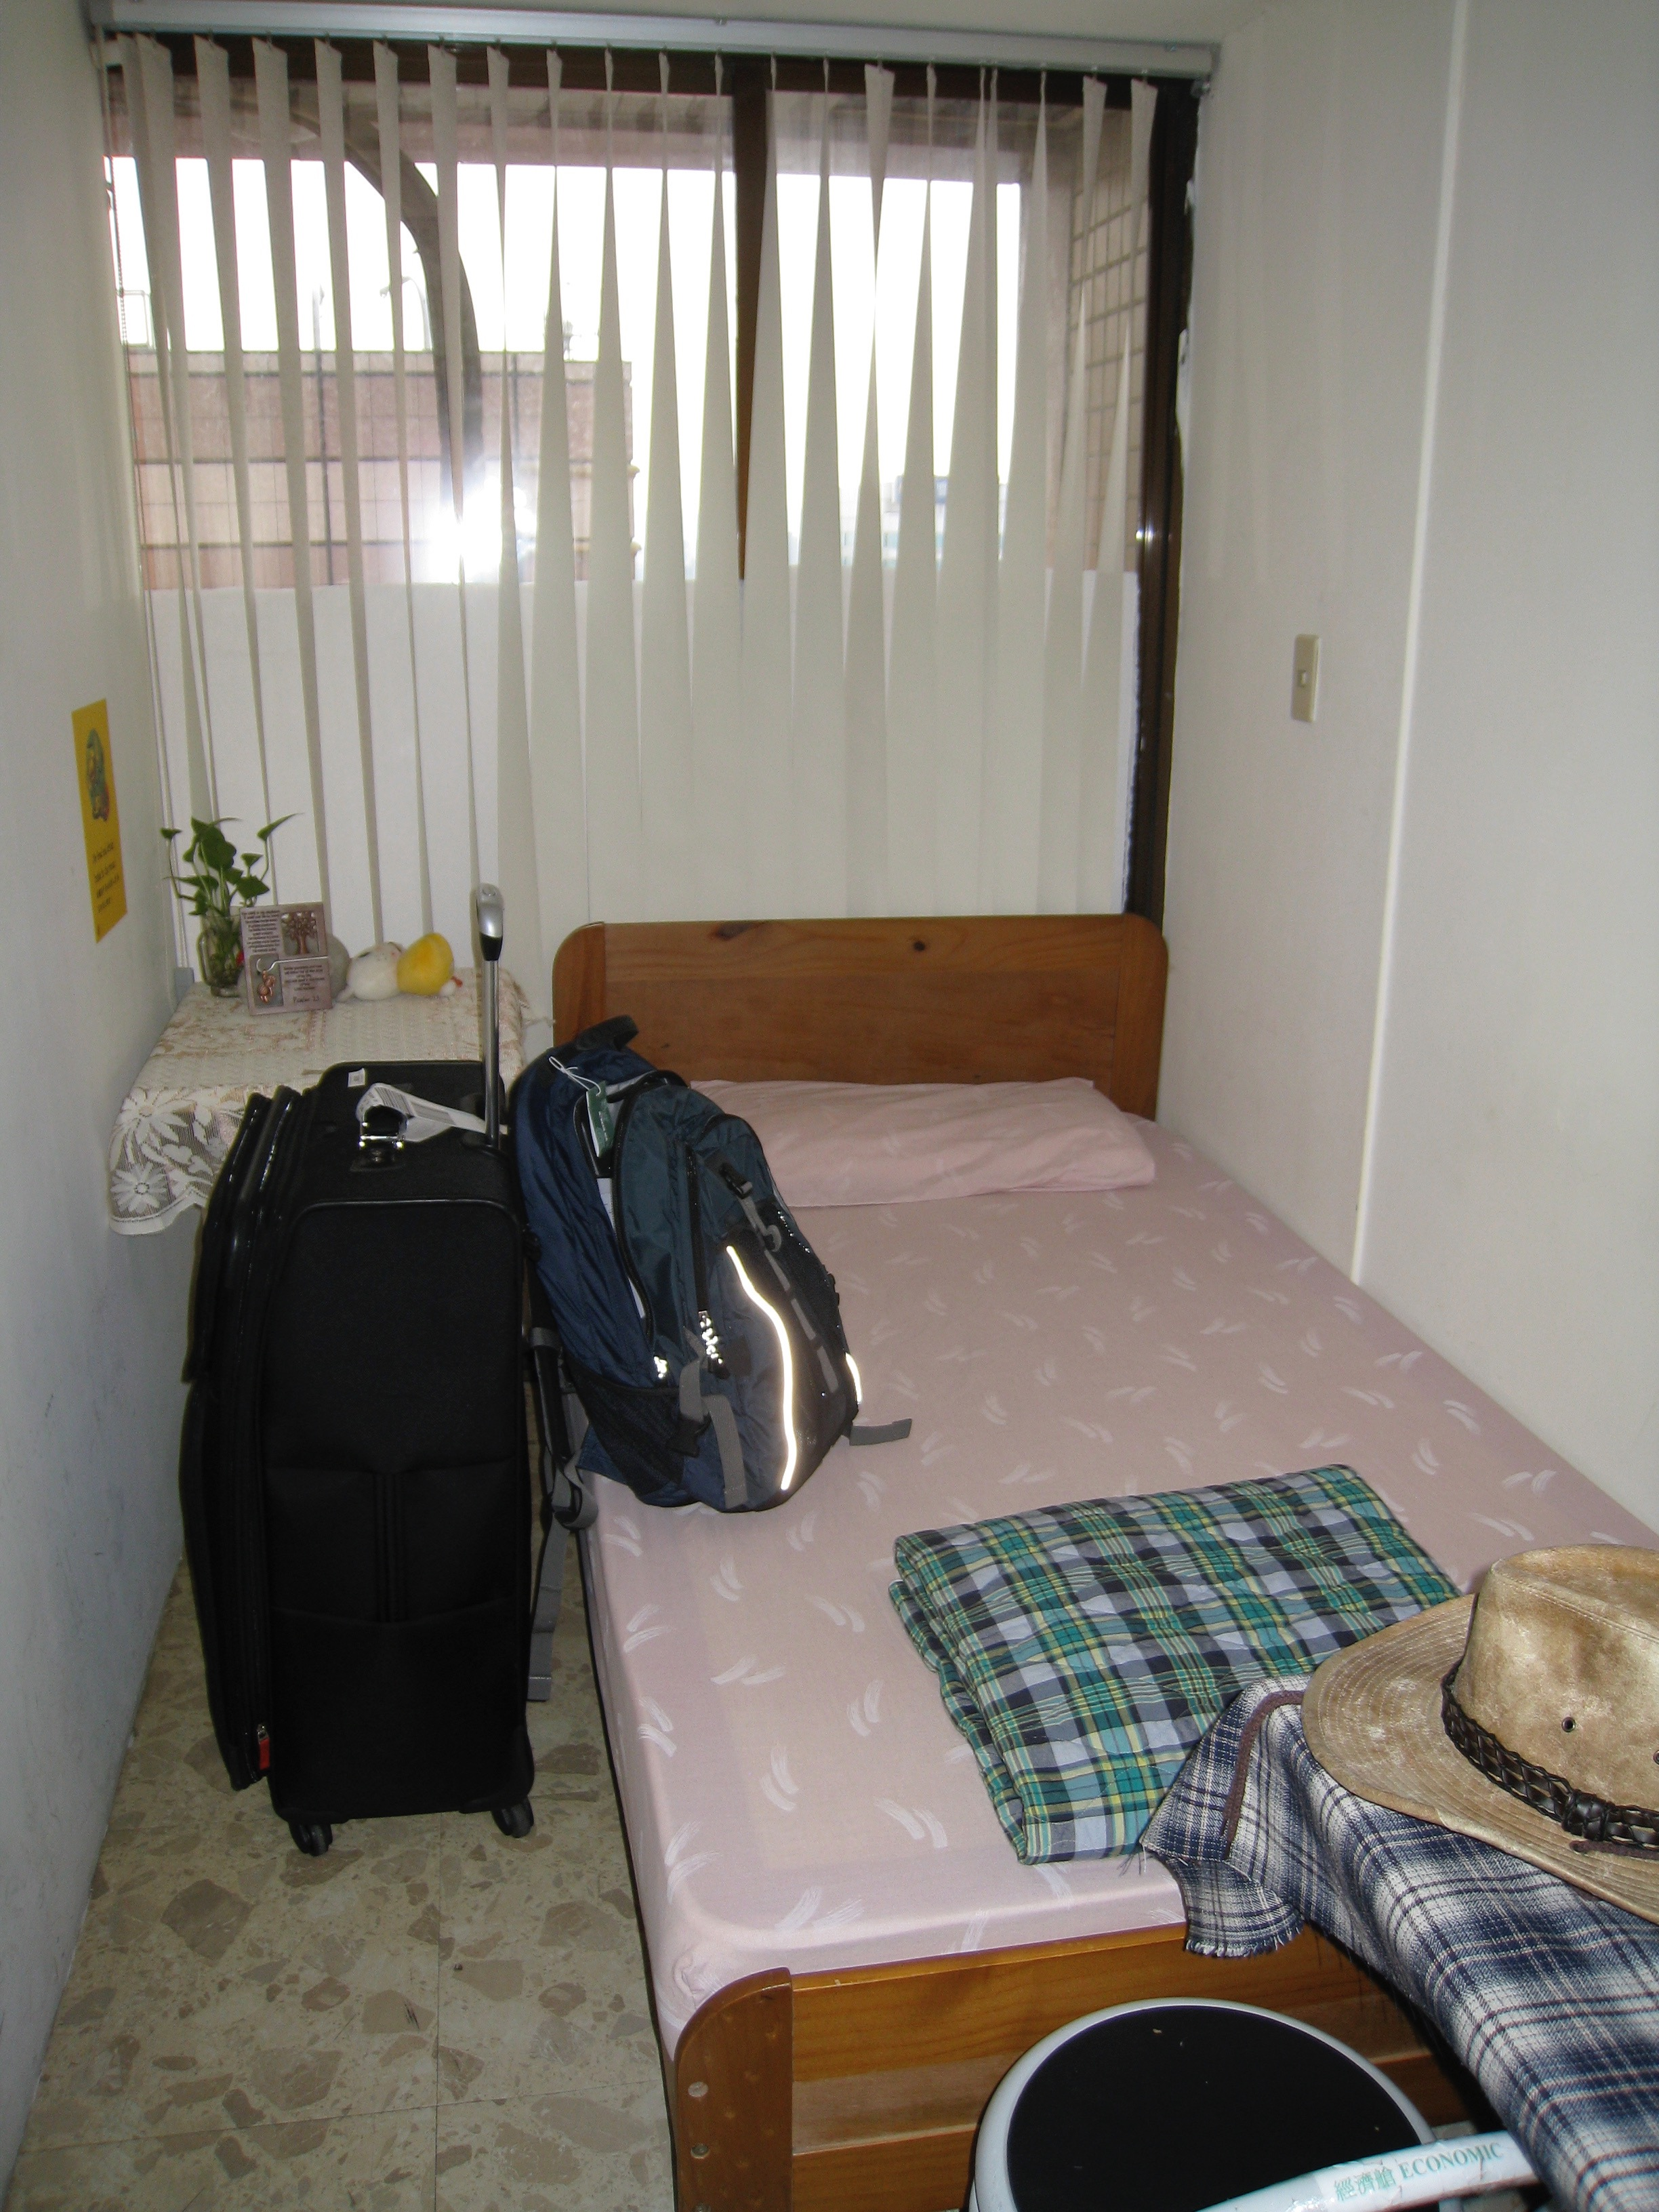 My room in the hostel in Taiwan